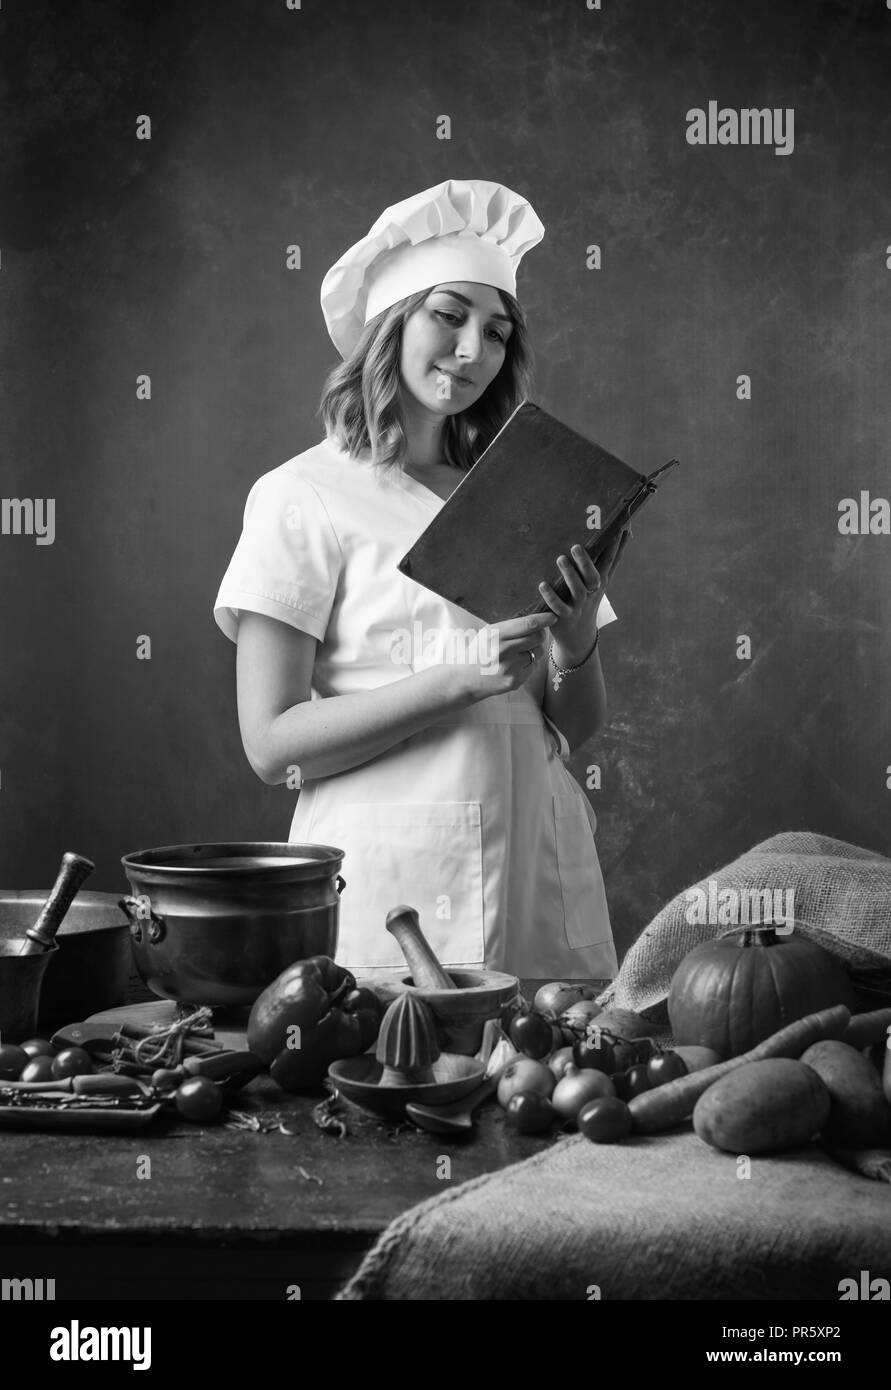 Young beautiful girl in a chef's uniform reads an old cookbook. On the table, different kitchen utensils and vegetables. - Stock Image